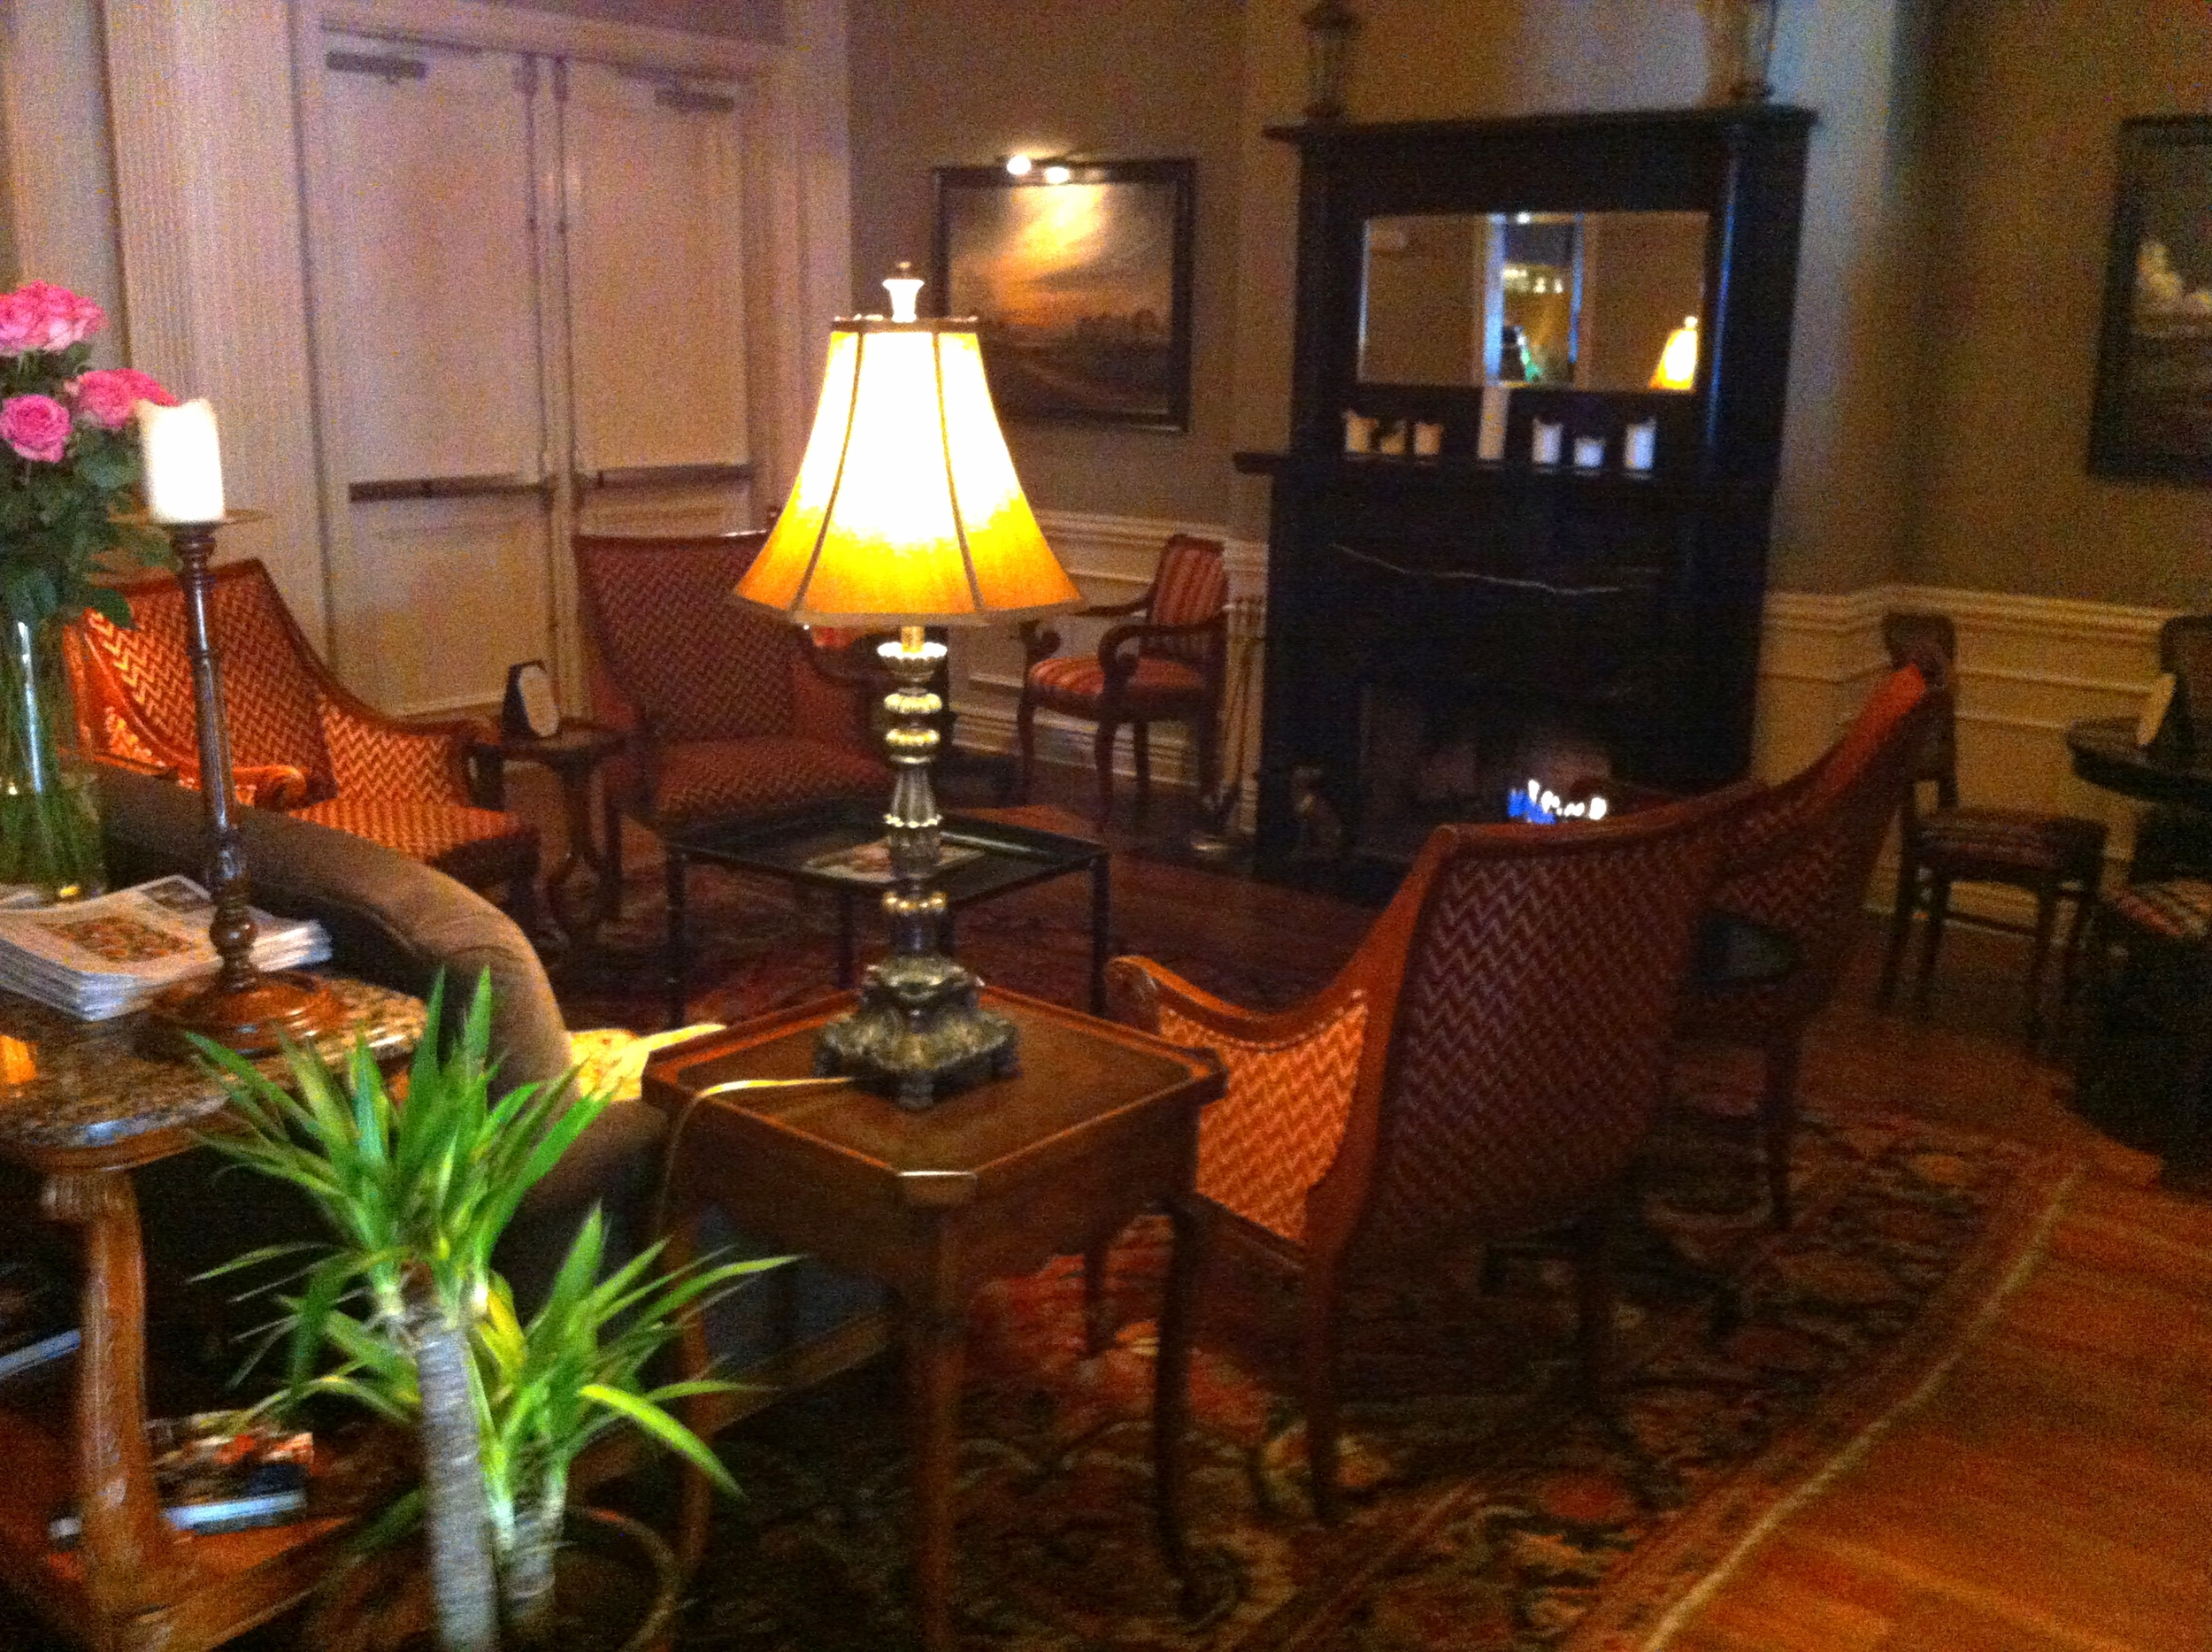 The cozy lobby fireplace is a great spot to relax, read a newspaper or magazine. It is just like home.